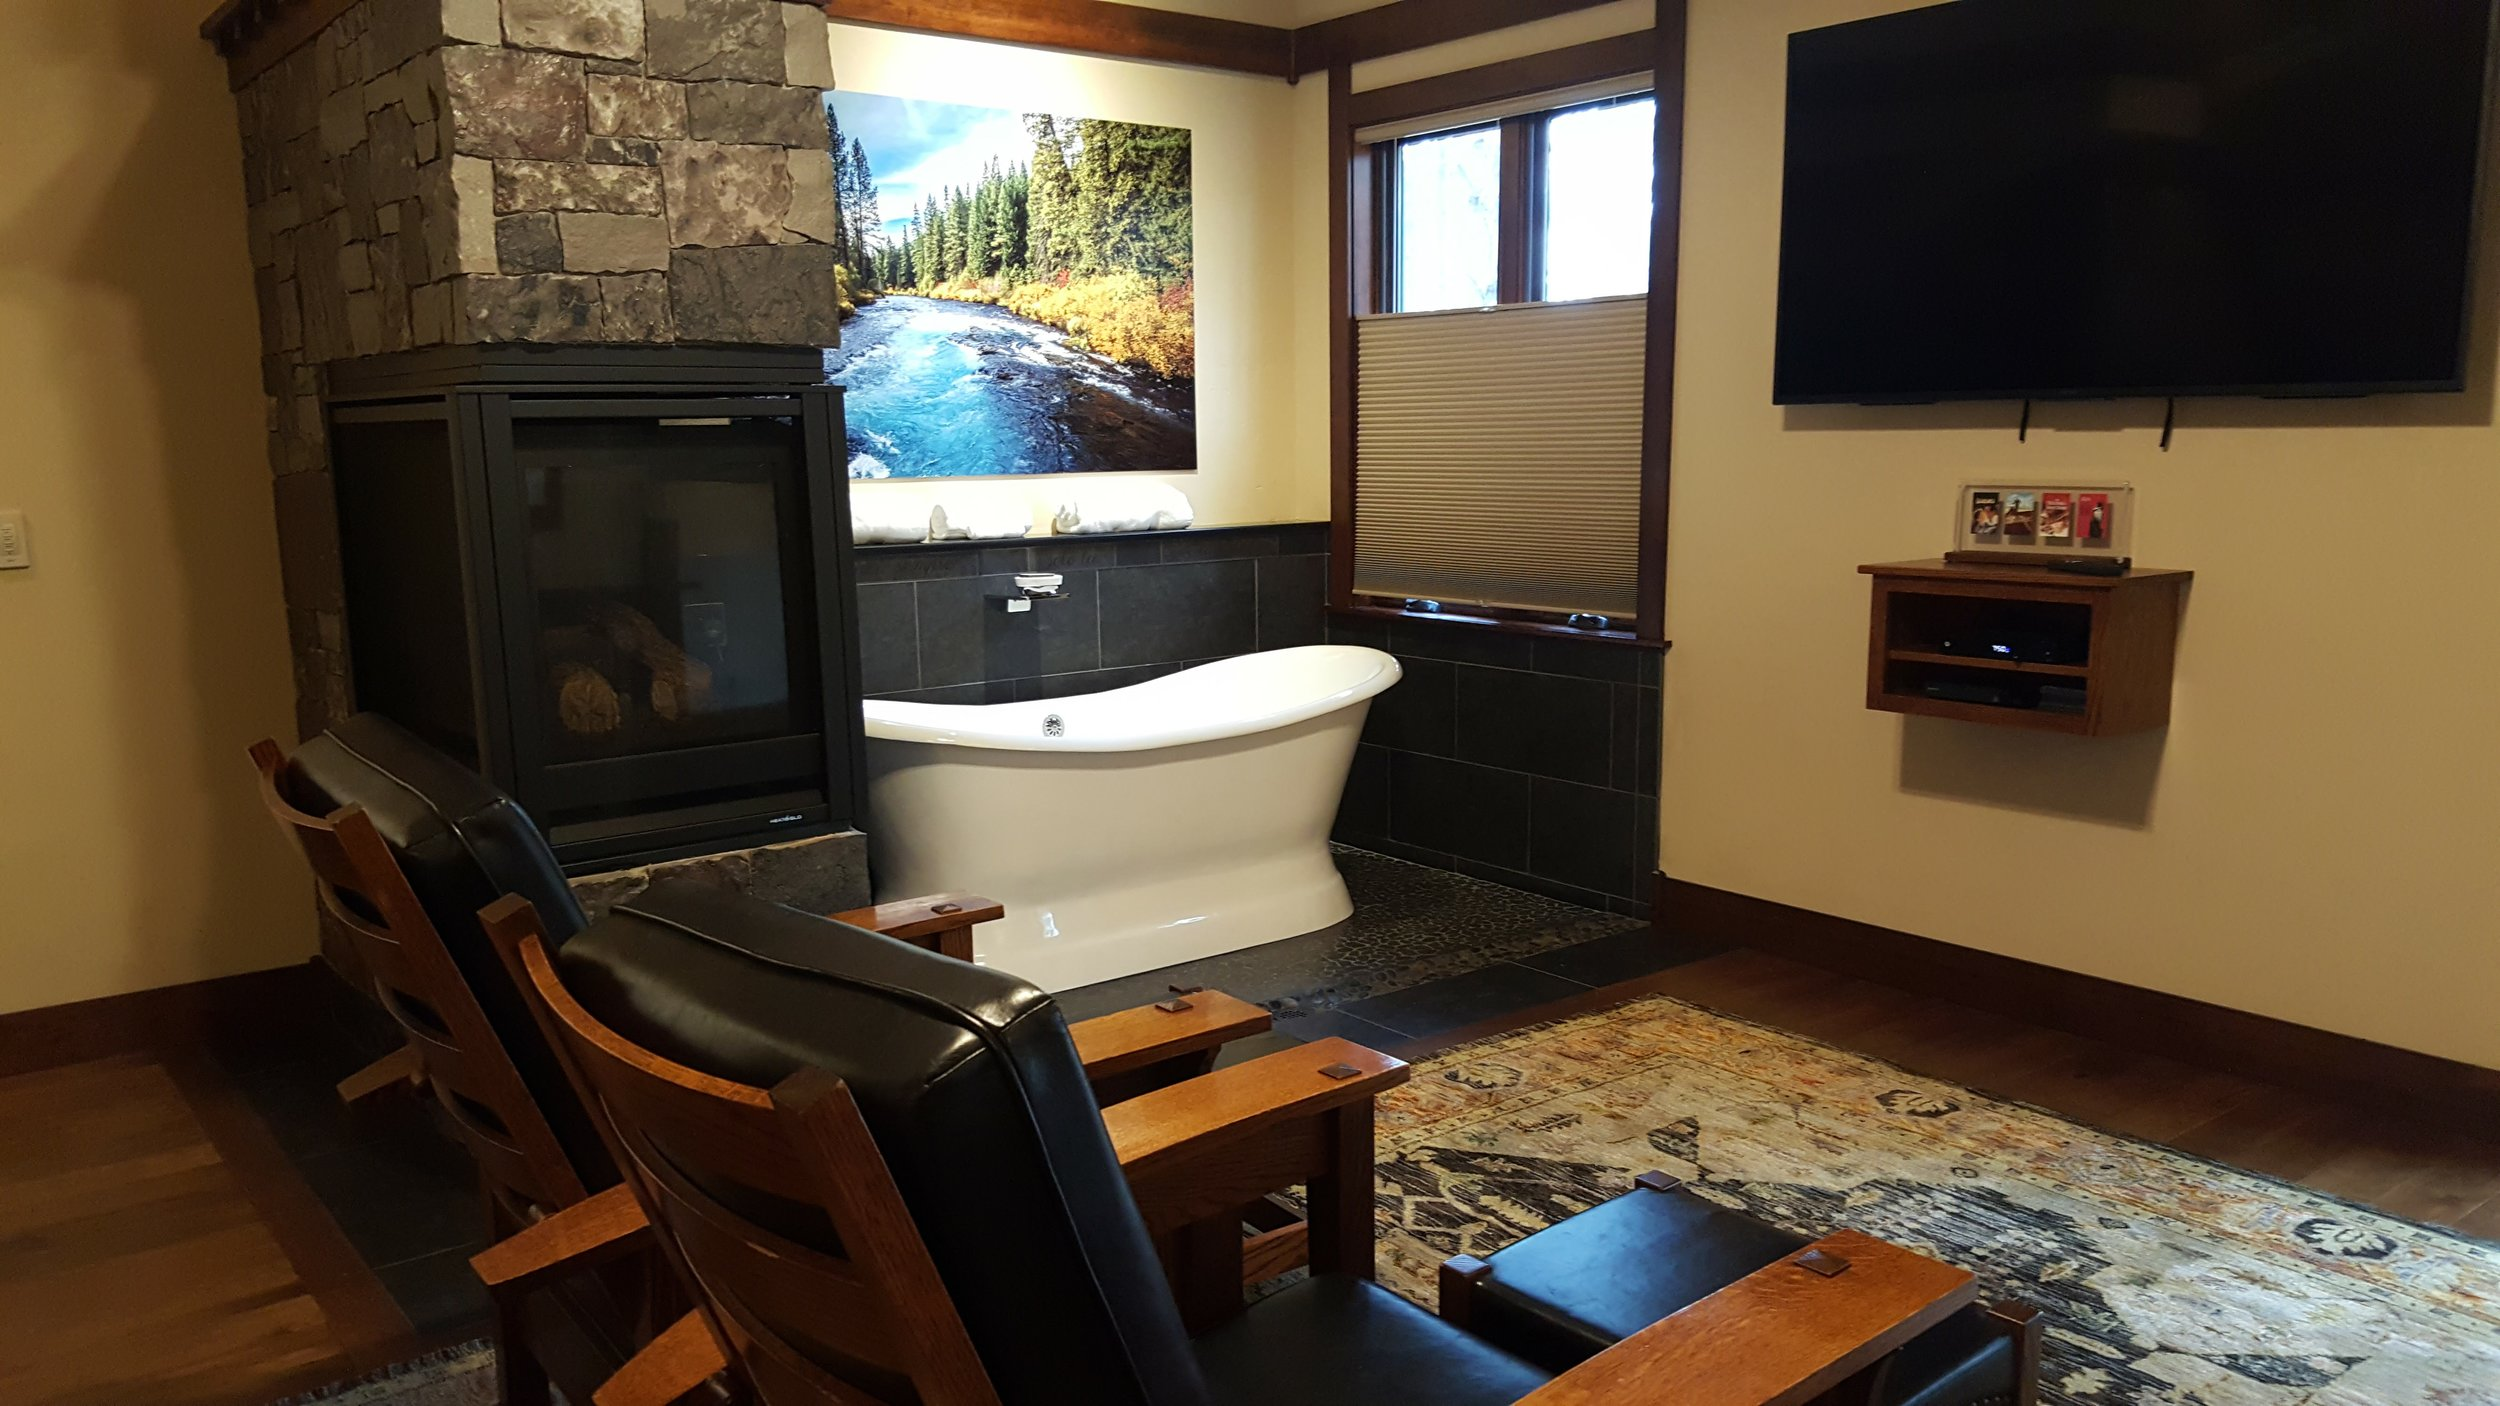 Serenity Cabins exude elegance and luxury @ 680 square feet.